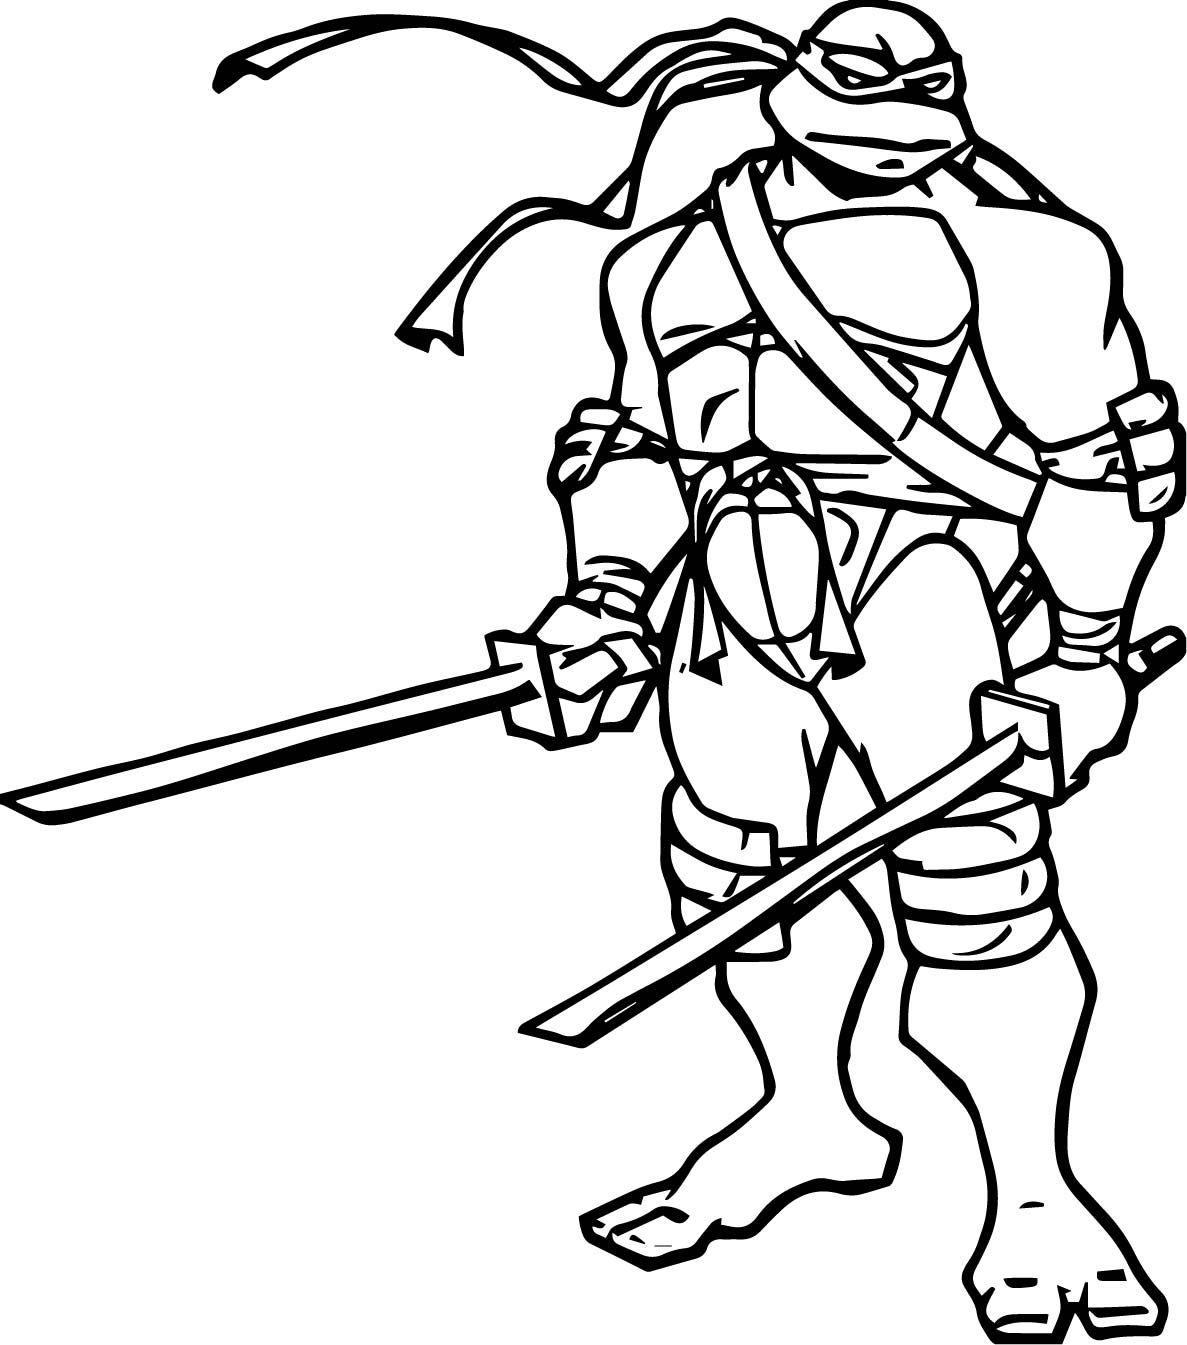 Cool Ninja Turtle Two Blade Leonardo Coloring Page Turtle Coloring Pages Ninja Turtle Coloring Pages Ninja Turtles